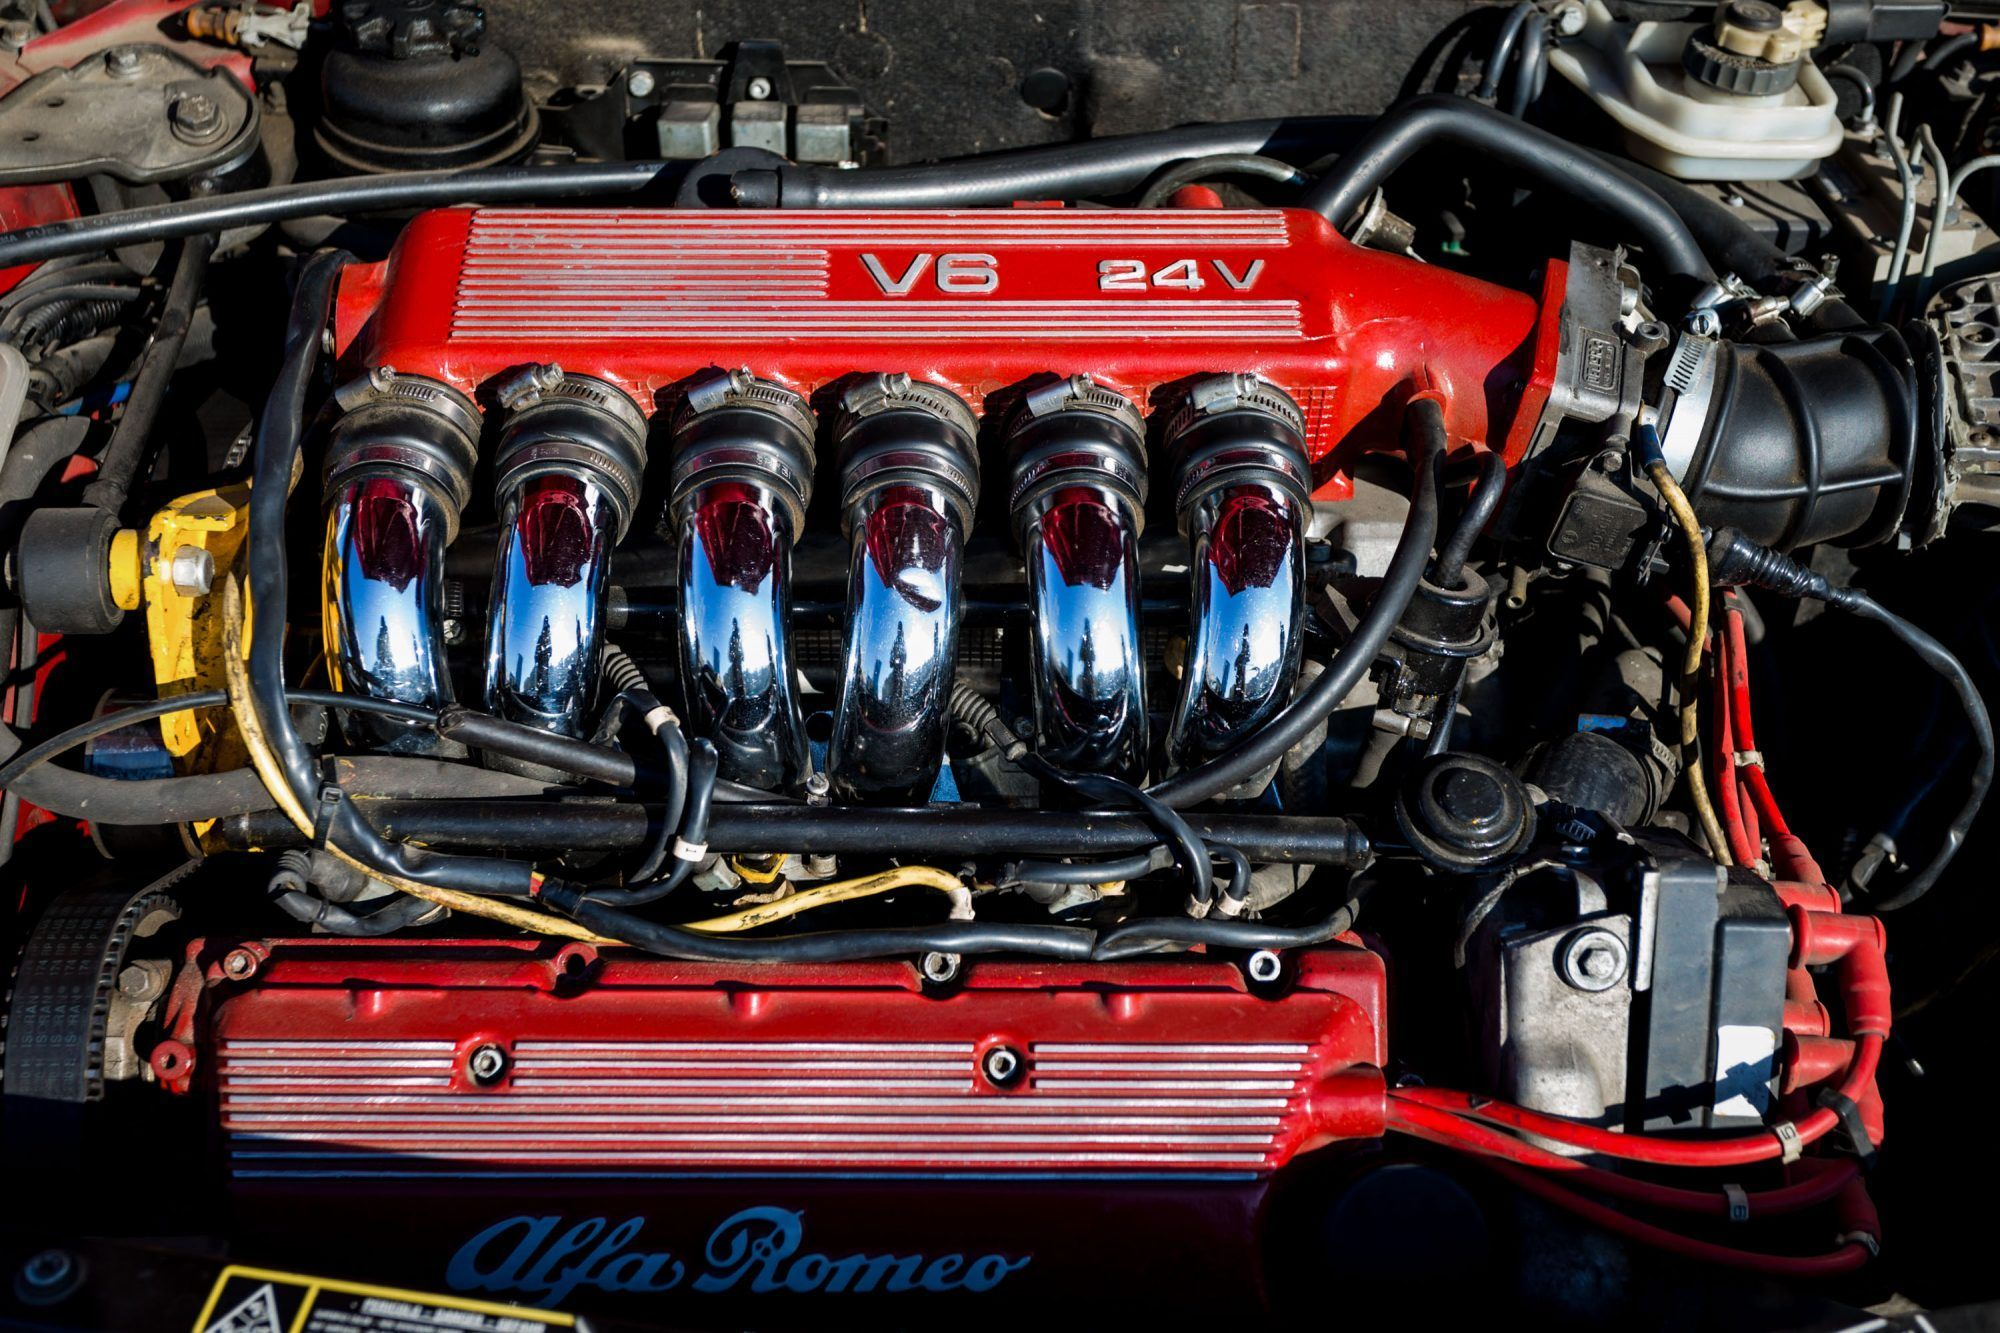 These Six-Cylinder Engines Are More Powerful Than Most V8s